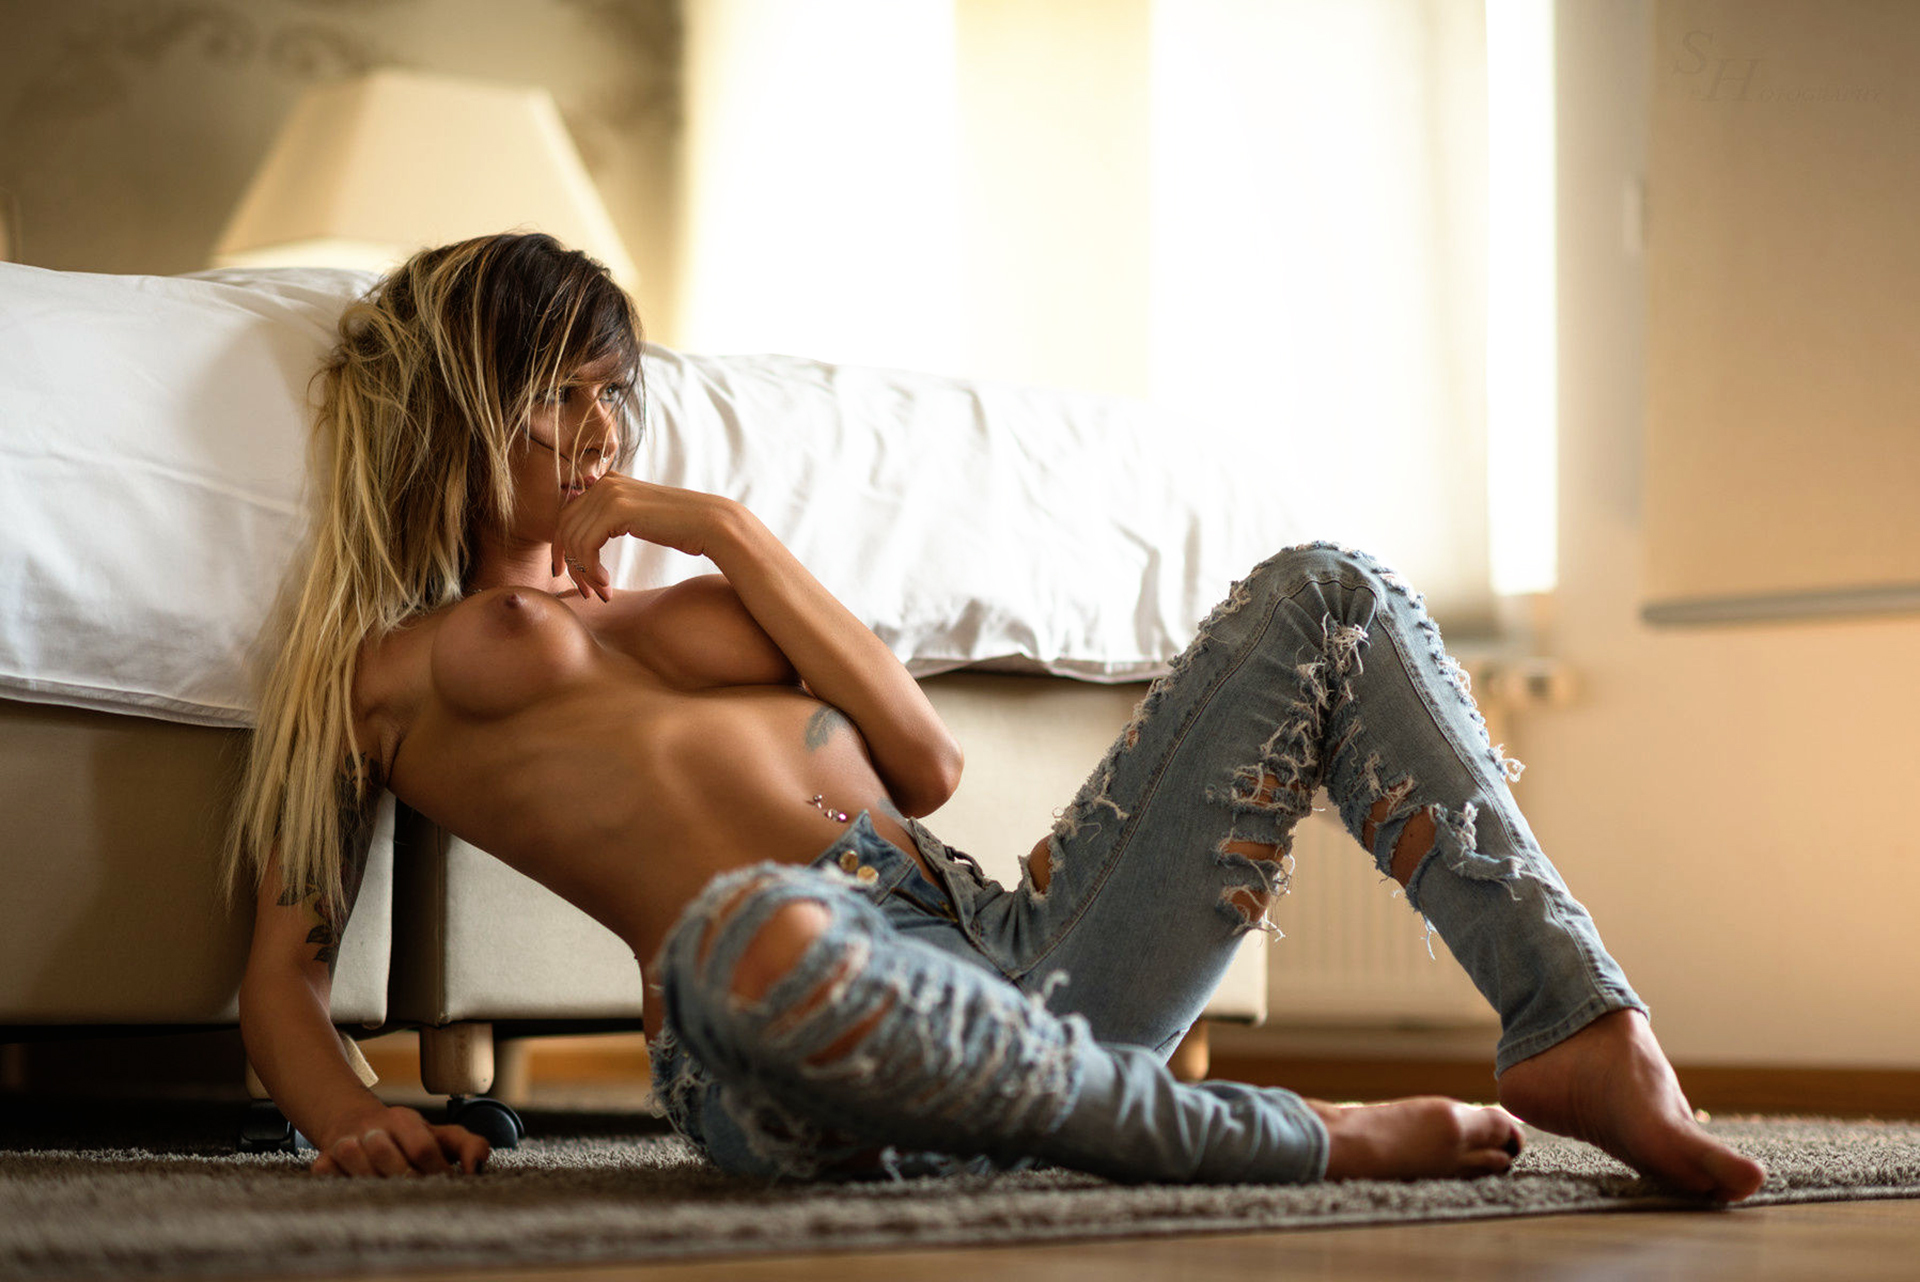 jeans-ripped-girl-naked